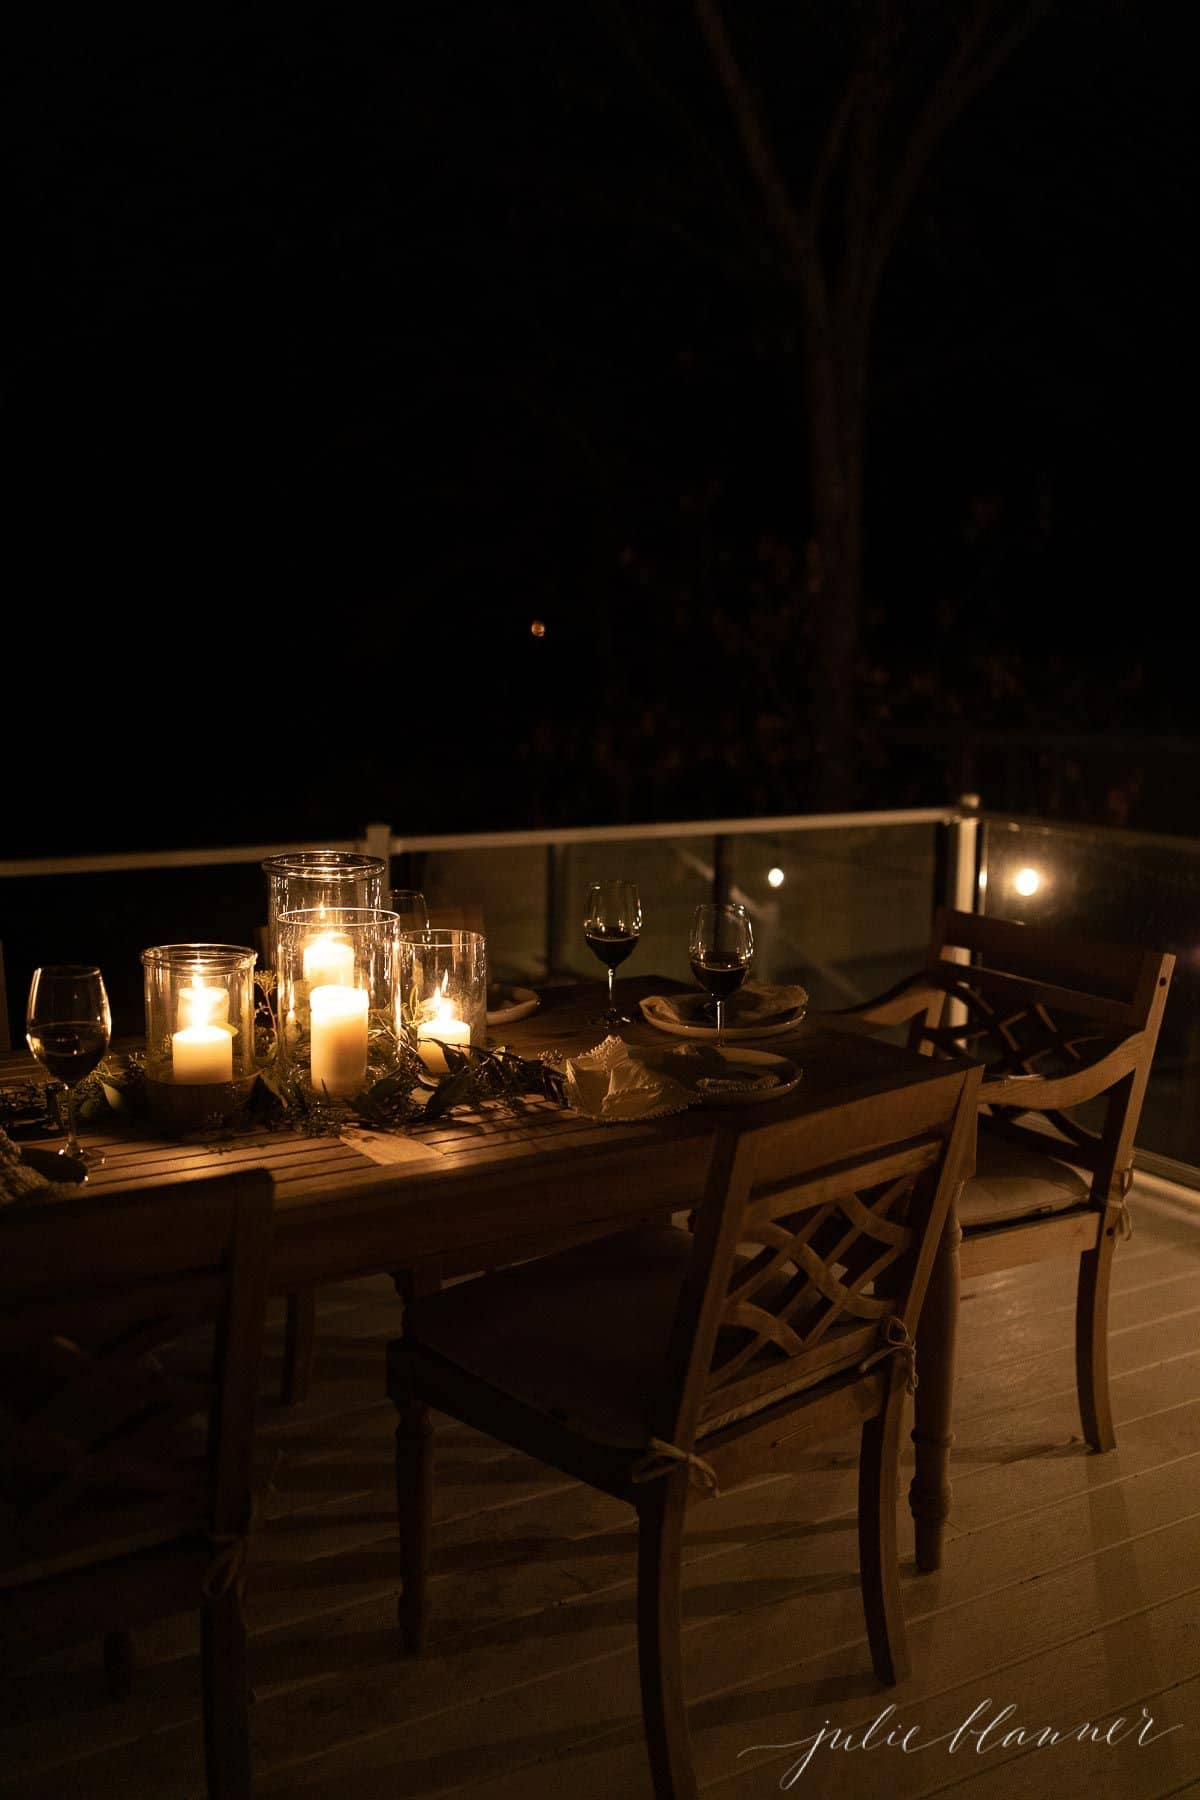 An outdoor dining table with a glowing candle centerpiece for Christmas.